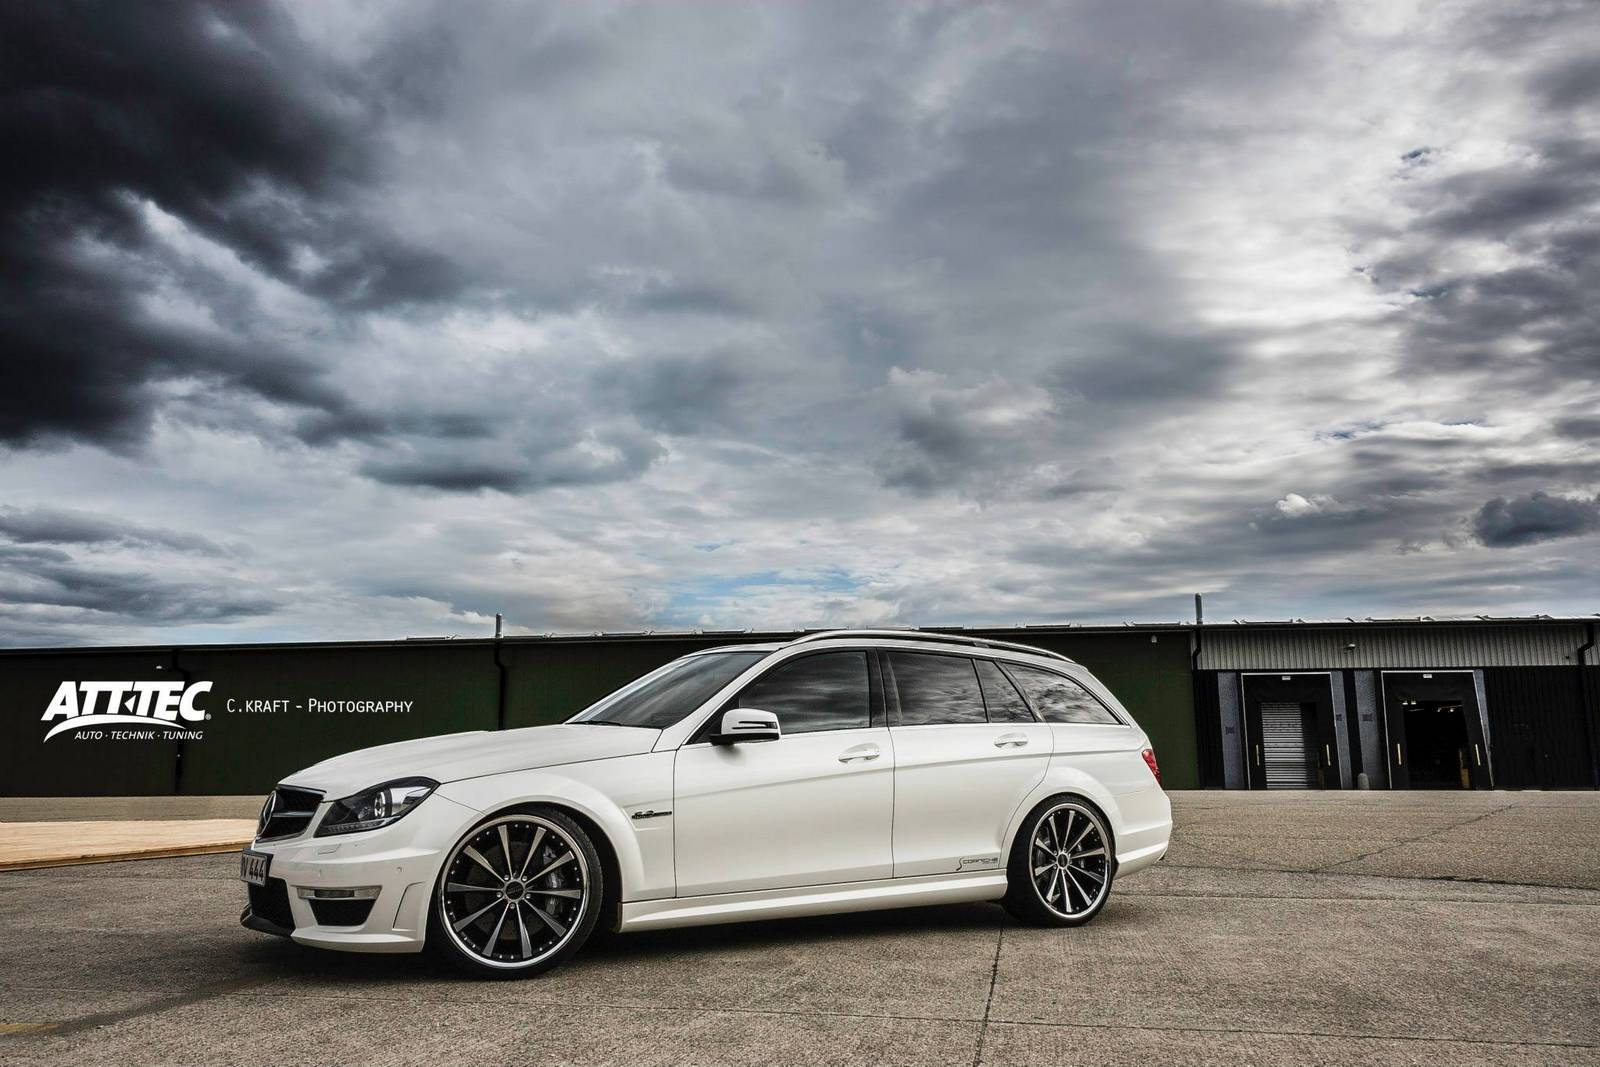 2019 Mercedes Benz C63 AMG Estate photo - 2